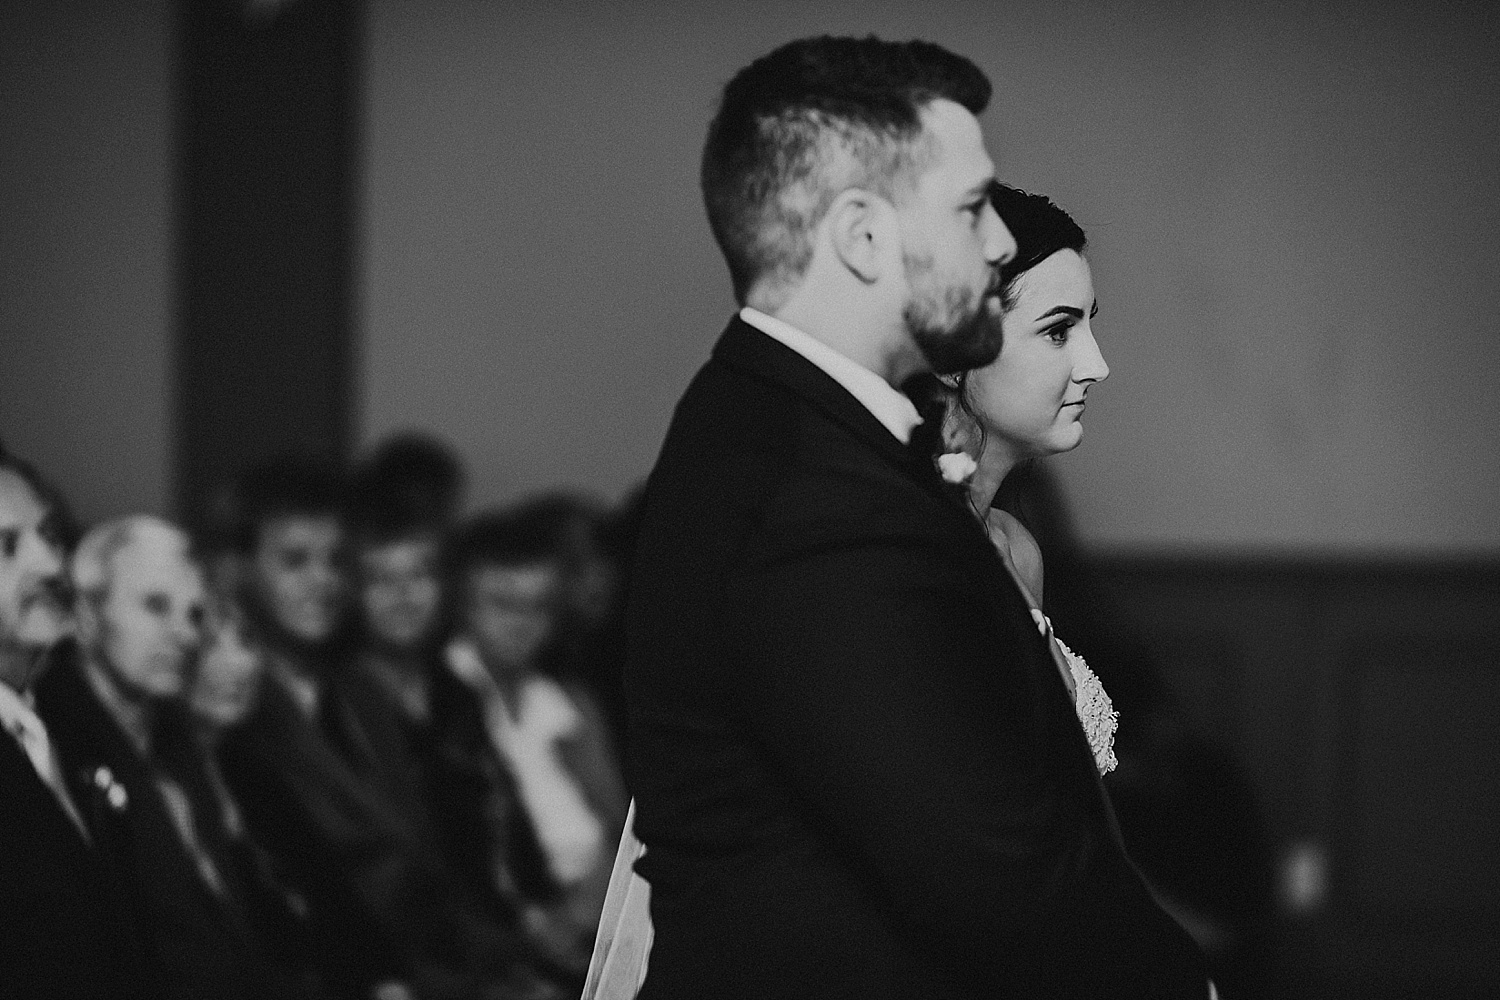 close-up of bride and groom at the alter, wedding photography